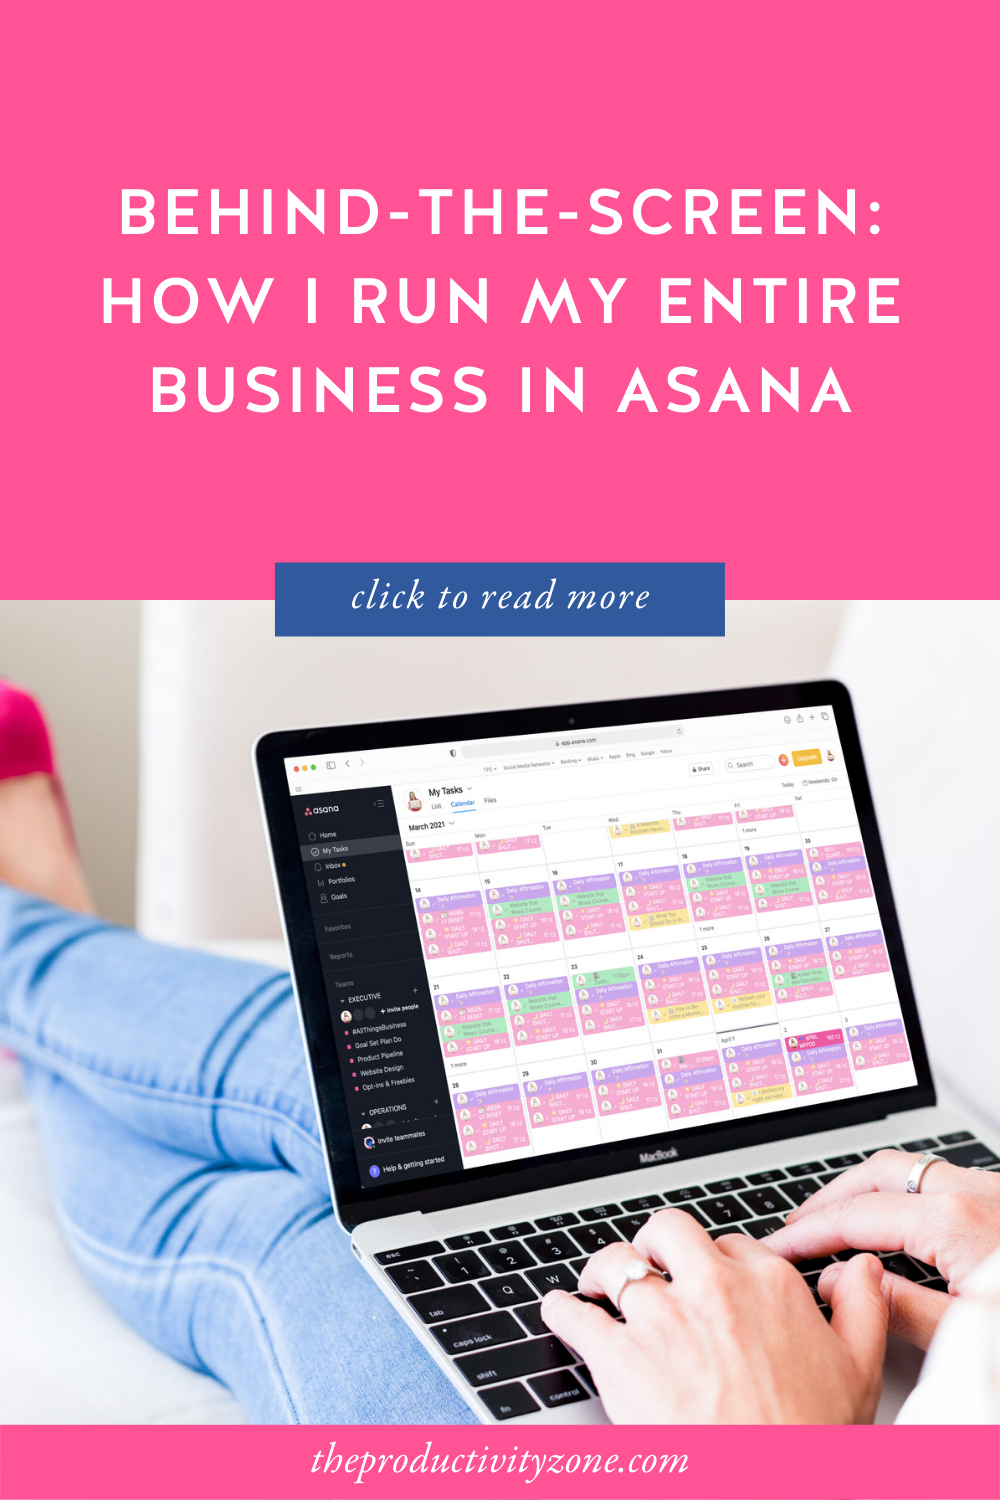 woman sitting on a couch in jeans and hot pink high heels with her feet up, working on her laptop, which shows the My Tasks view in Asana